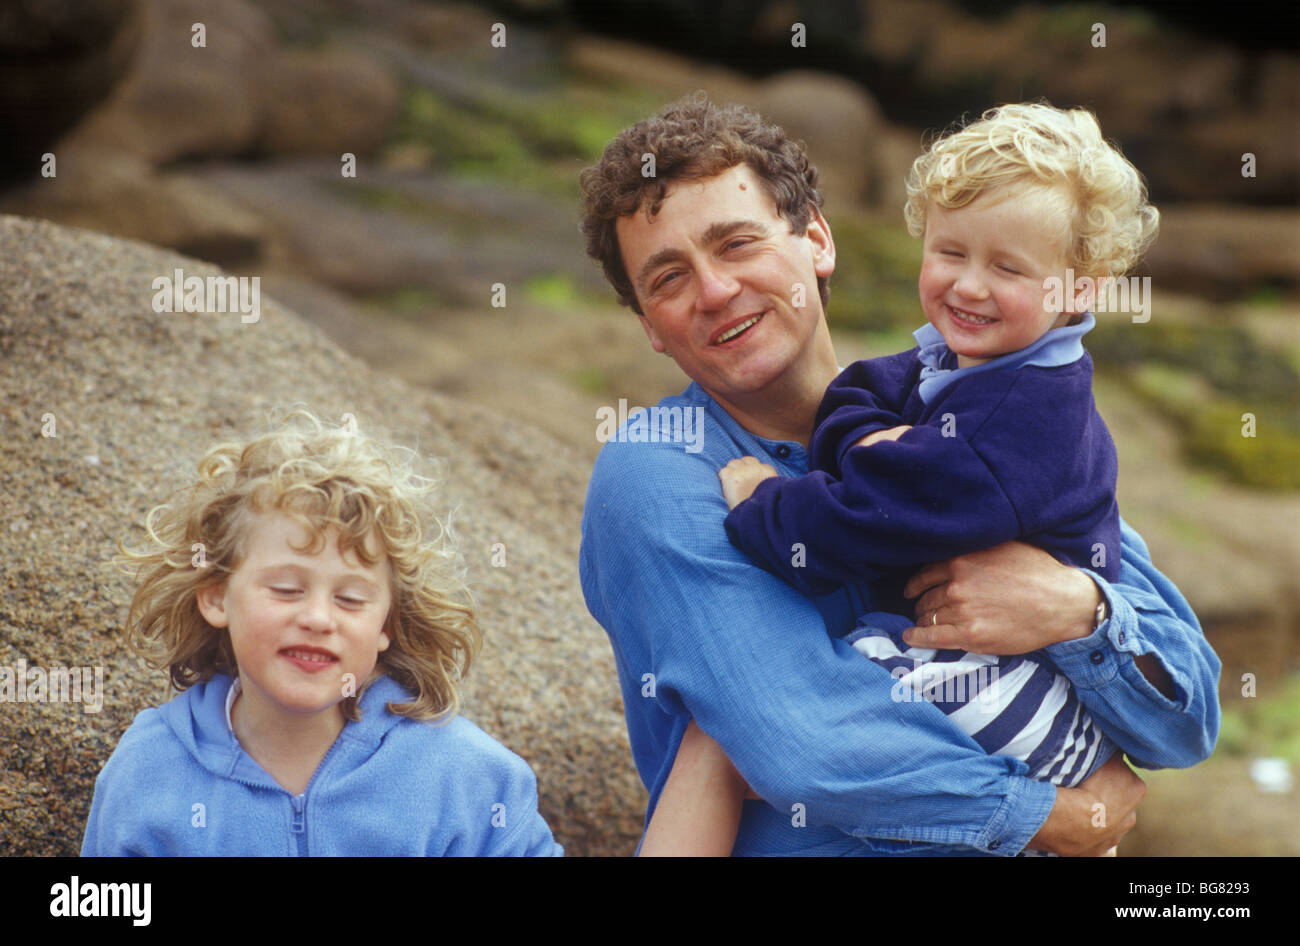 father with son and daugher showing family resemblance - Stock Image